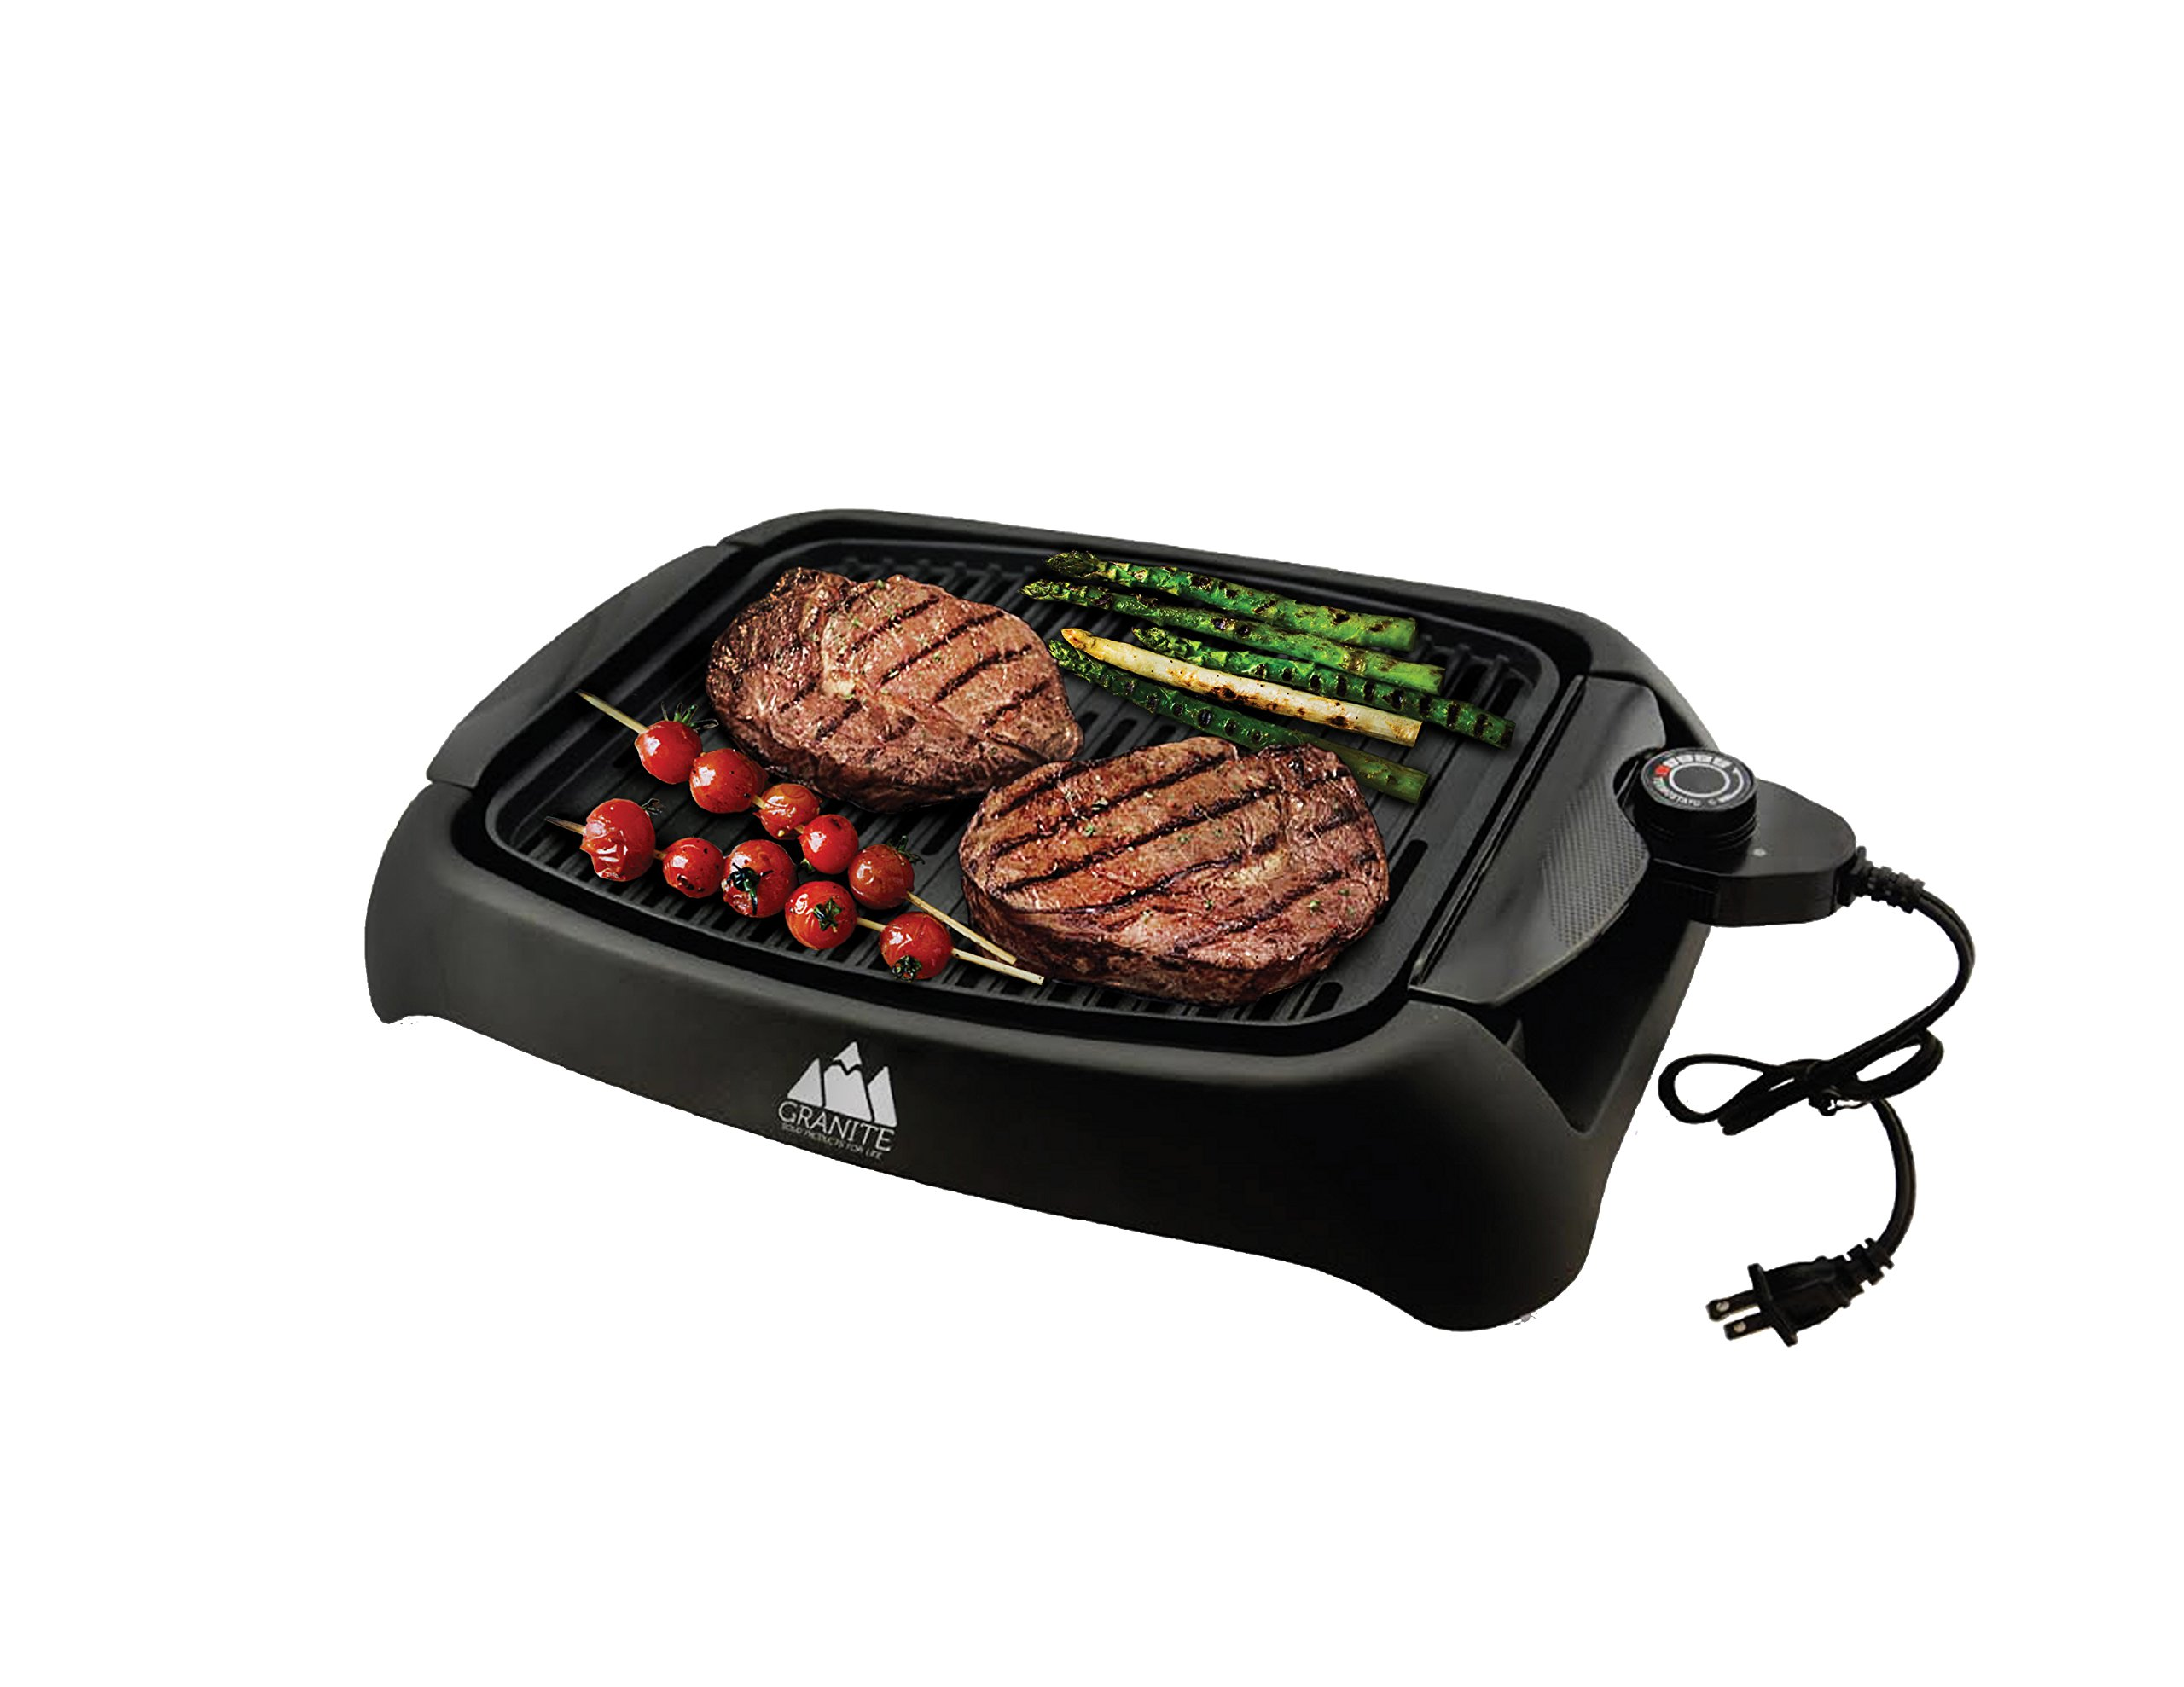 Granite Premium Indoor Smokeless Healthy BBQ Griller